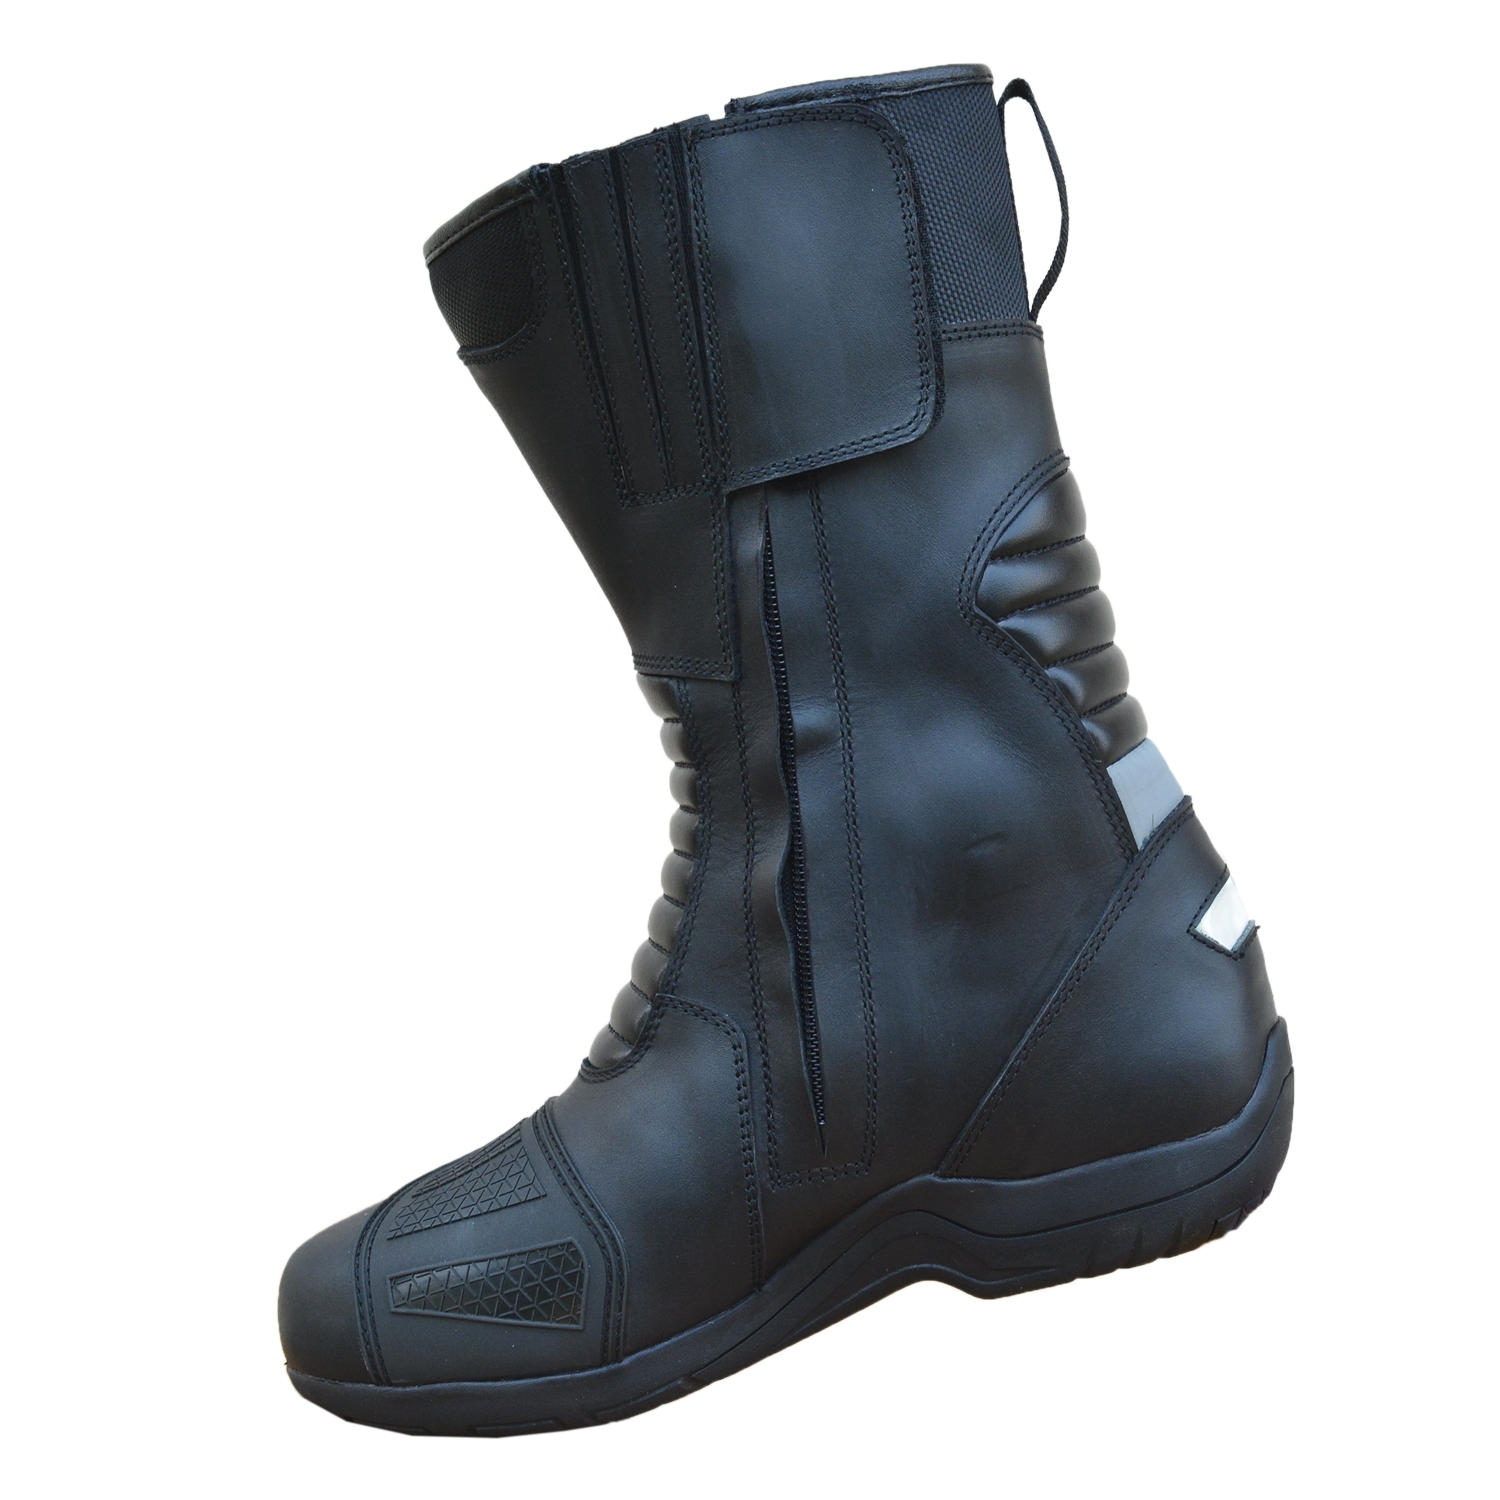 Touring Boots side